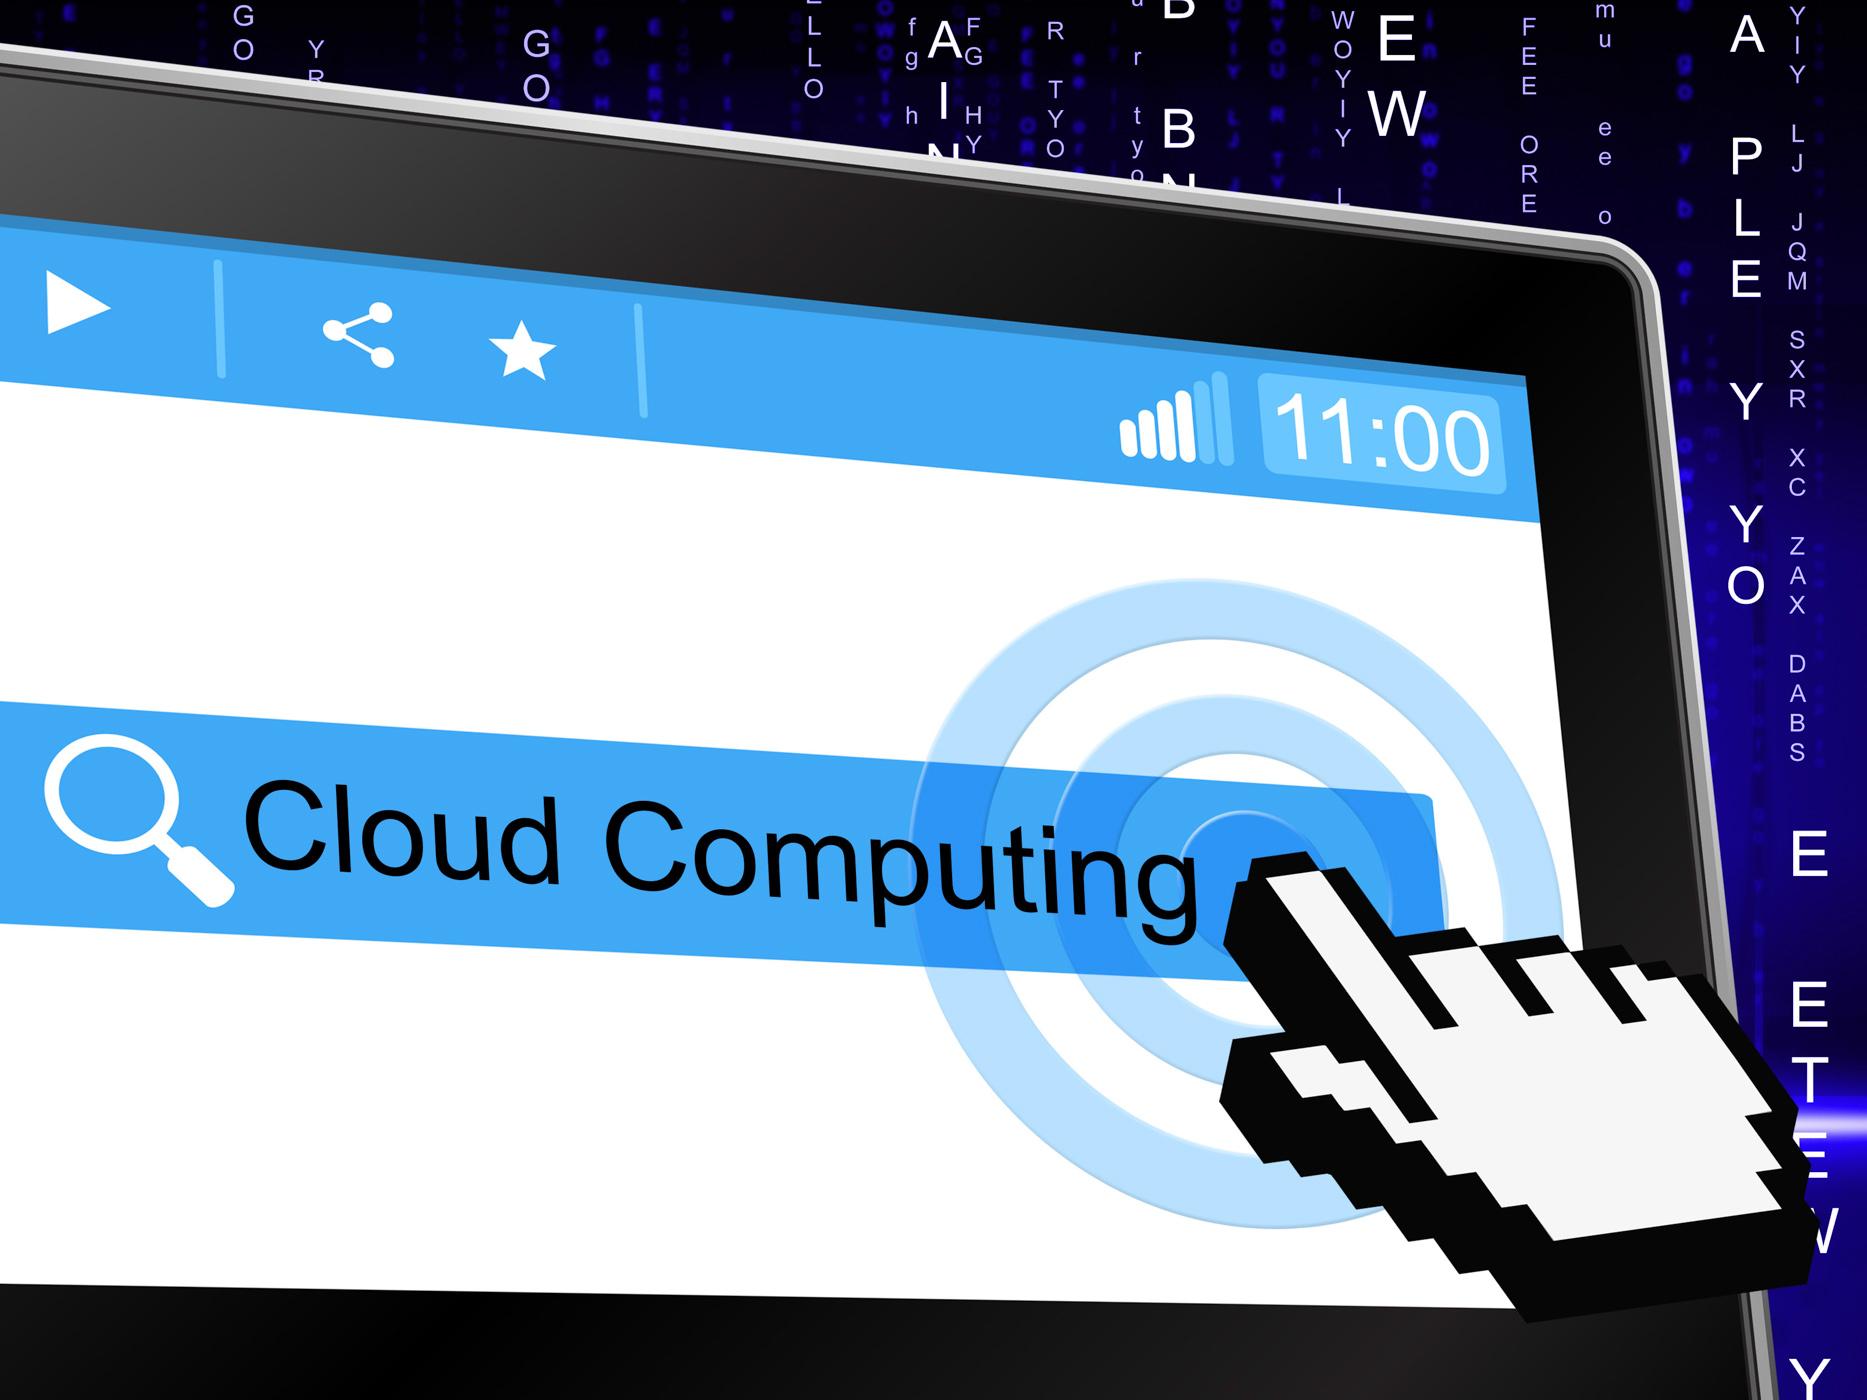 Cloud computing means information technology and cloud-computing photo